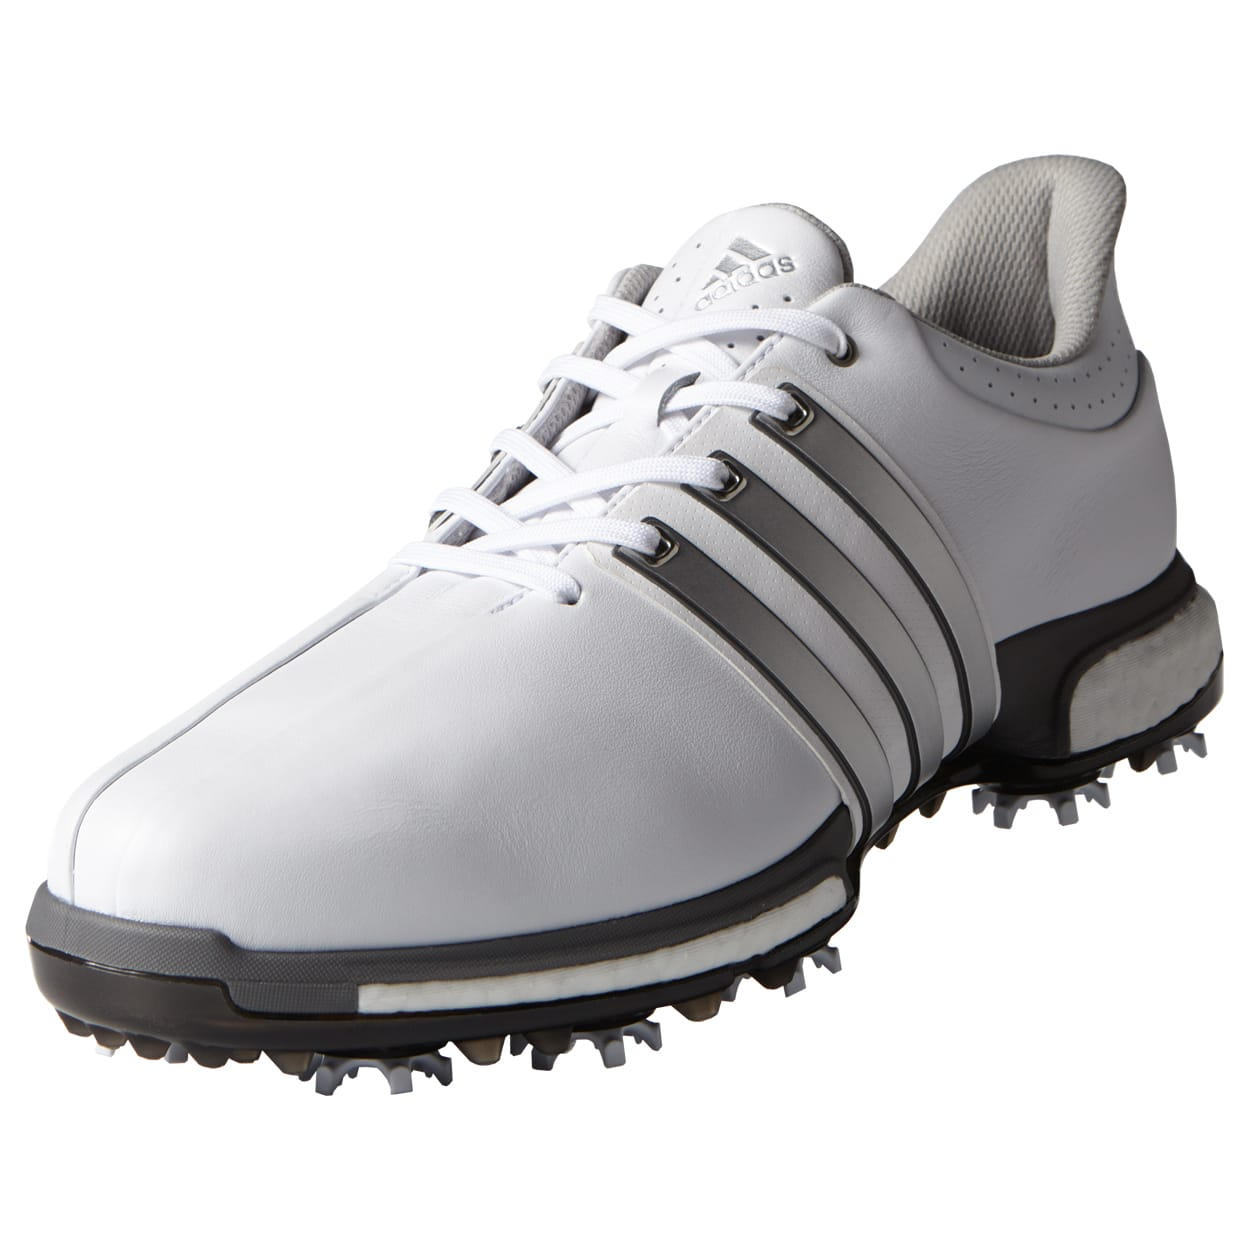 eBay: Men's adidas Tour 360 Boost Golf Shoes (Various Colors) - $80.99 Plus Free Shipping